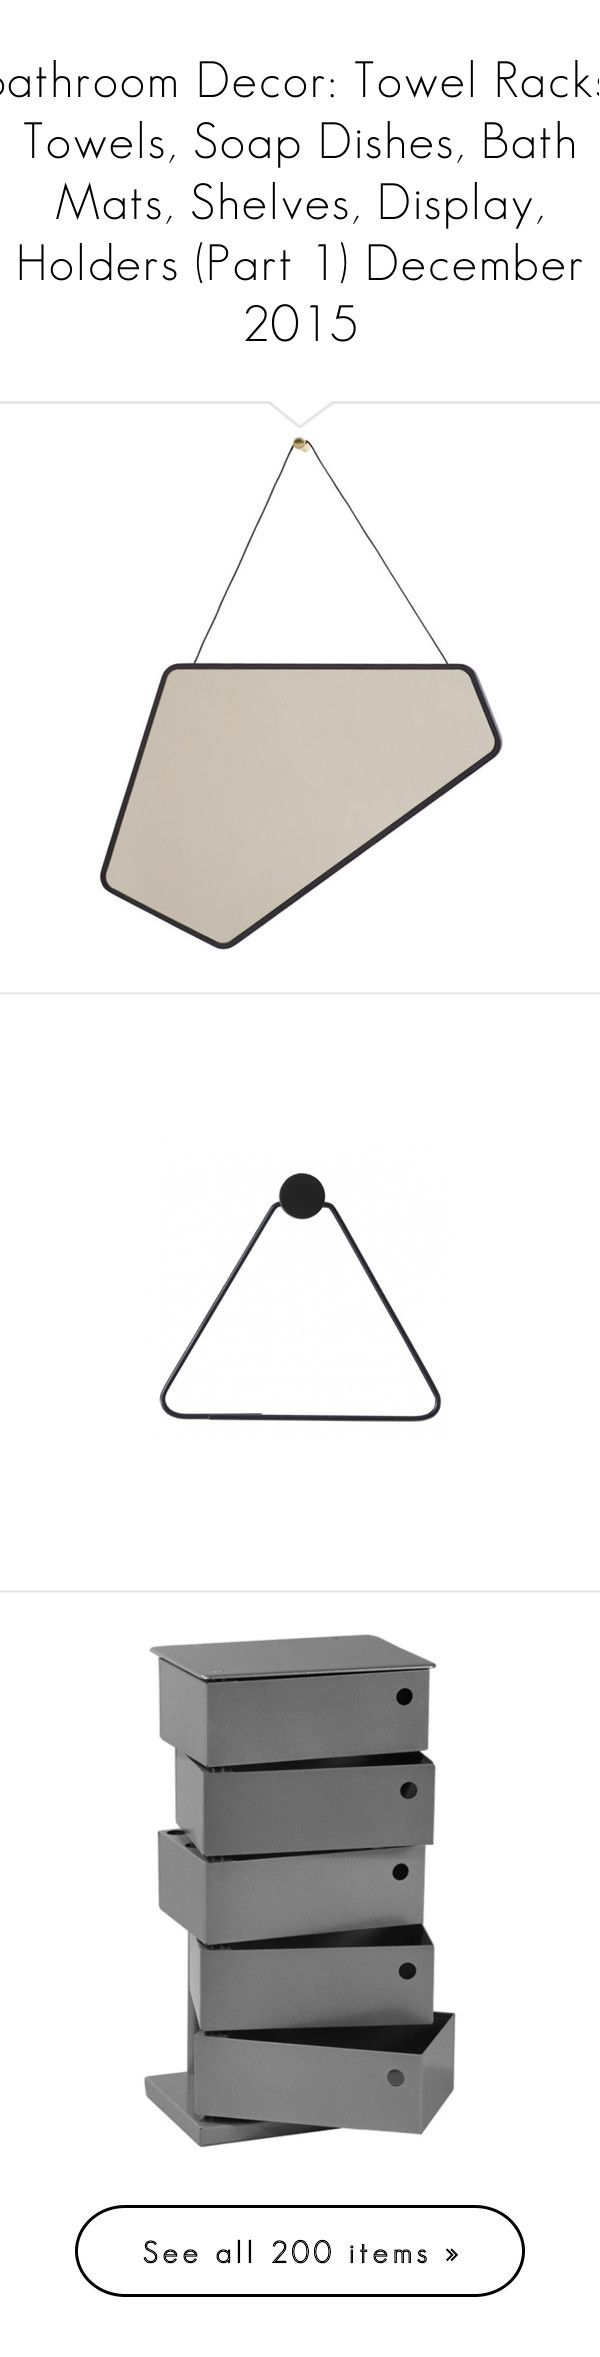 """""""Bathroom Decor: Towel Racks, Towels, Soap Dishes, Bath Mats, Shelves, Display, Holders (Part 1) December 2015"""" by ivygracestyle ❤ liked on Polyvore featuring home, home decor, black home accessories, scandinavian home decor, black home decor, bed & bath, bath, bath accessories, black toilet paper holder and black tissue holder"""